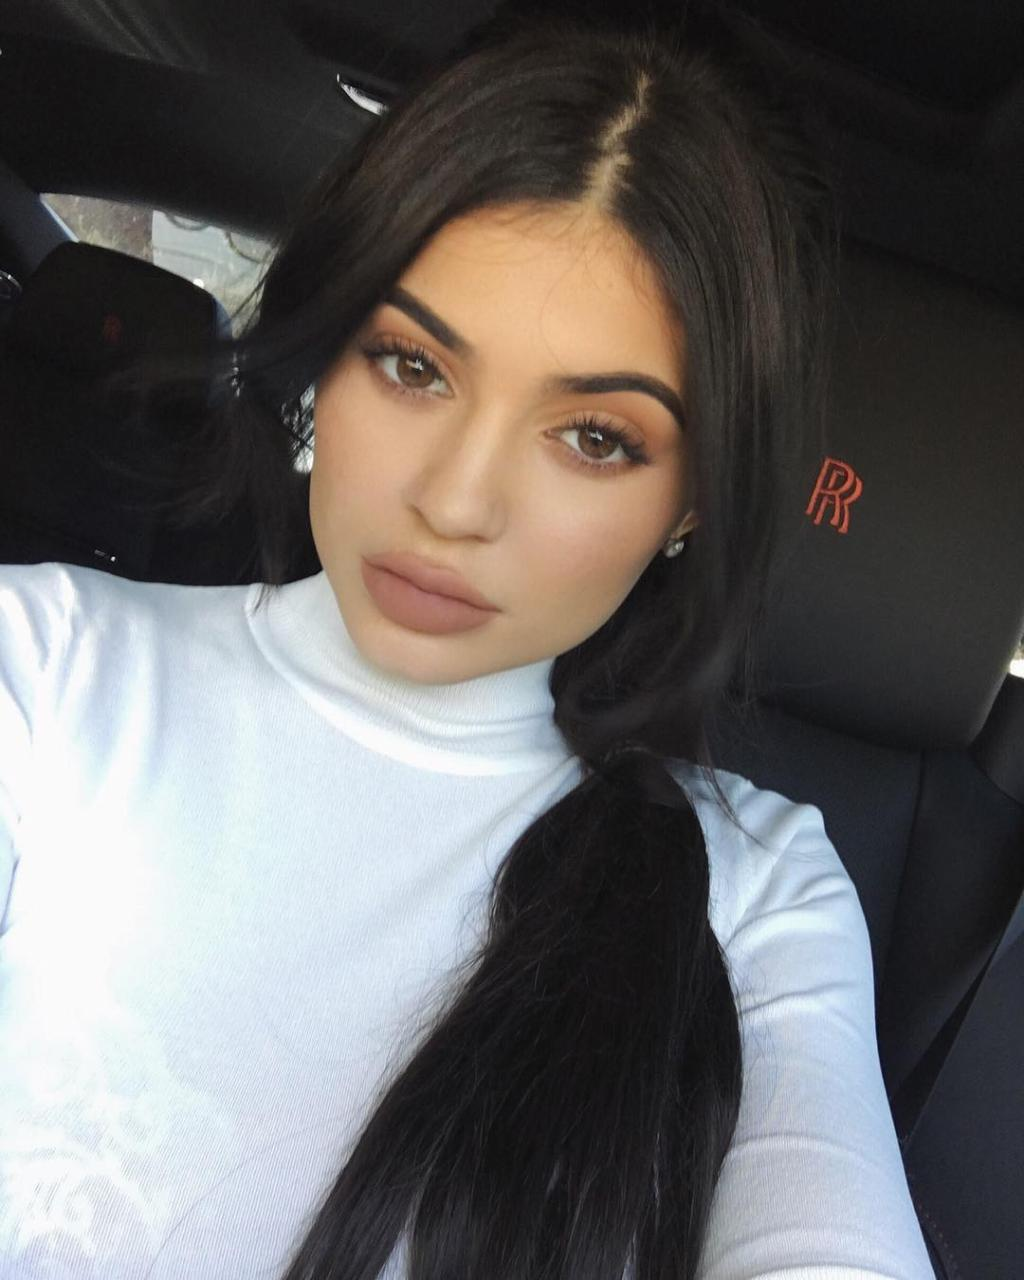 Embarrassing! Did Kylie Jenner Pee On Her Body? -Watch Video